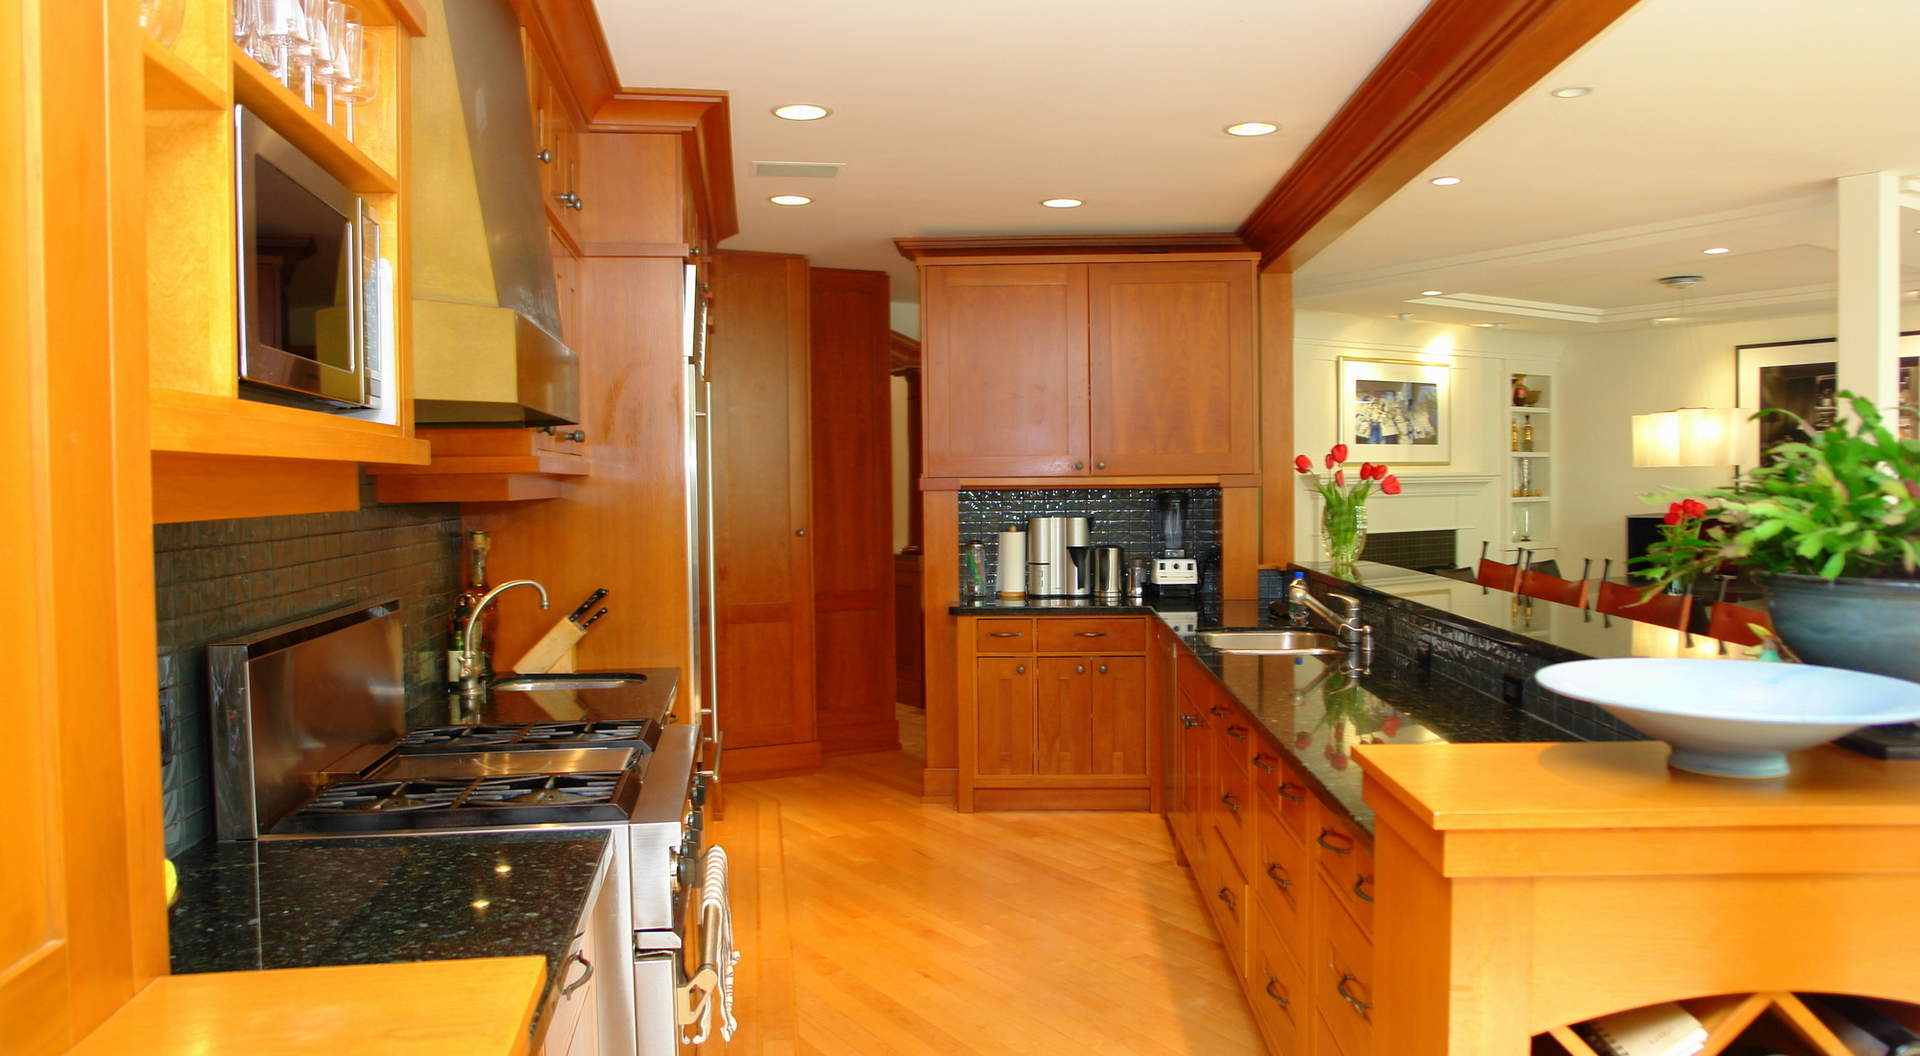 Fabulous Cabinetry